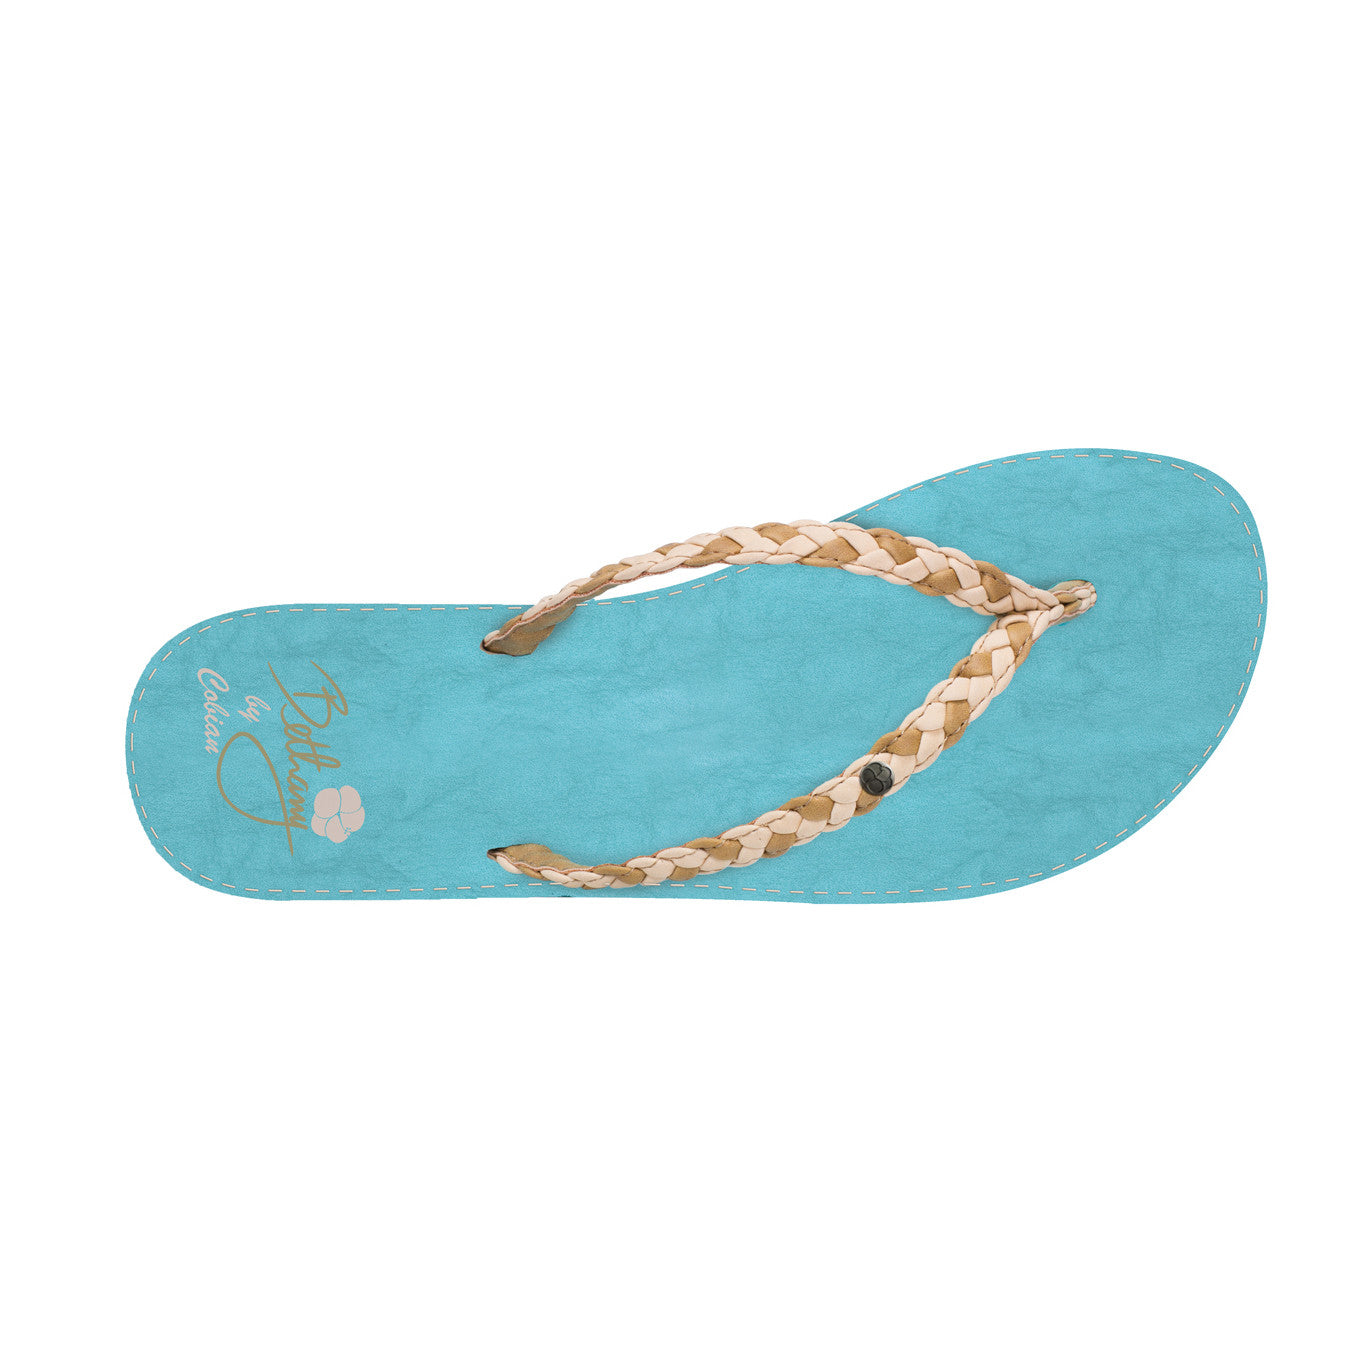 717fdf3f3b99 cobian sandals sale   OFF50% Discounted